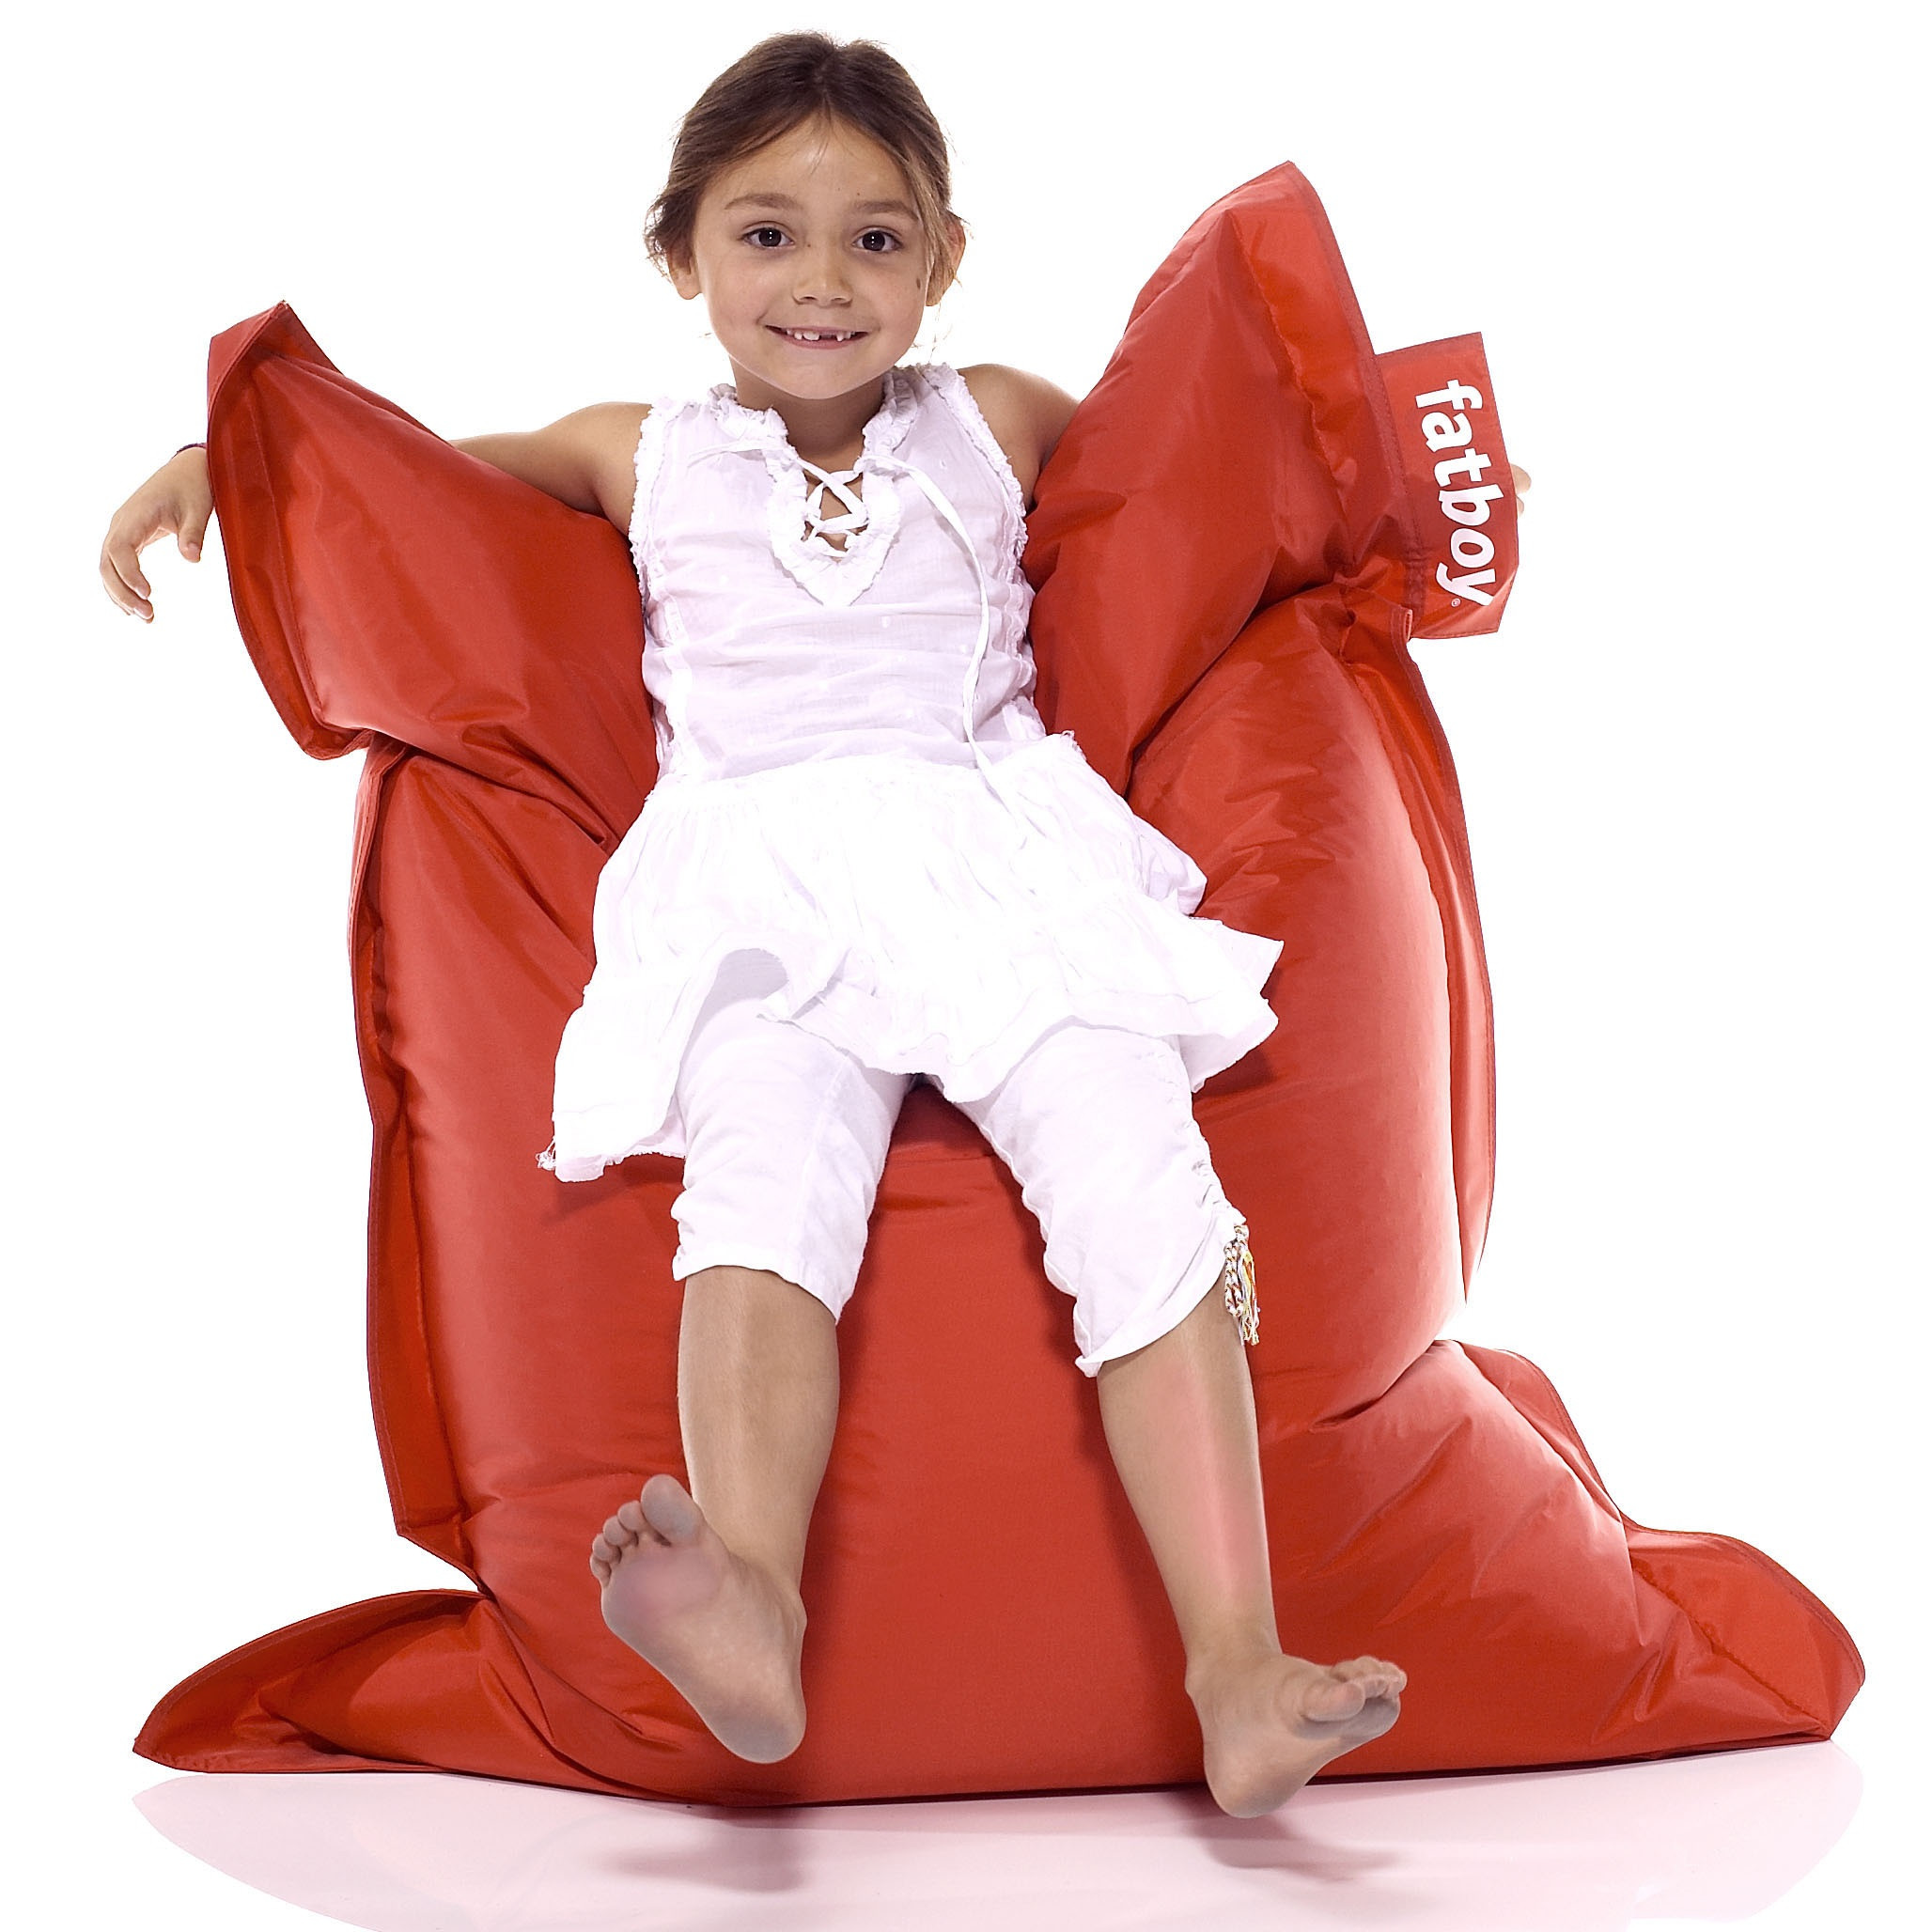 the red sweetest thing party seating furniture buggle up confection fatboy products lifestyle